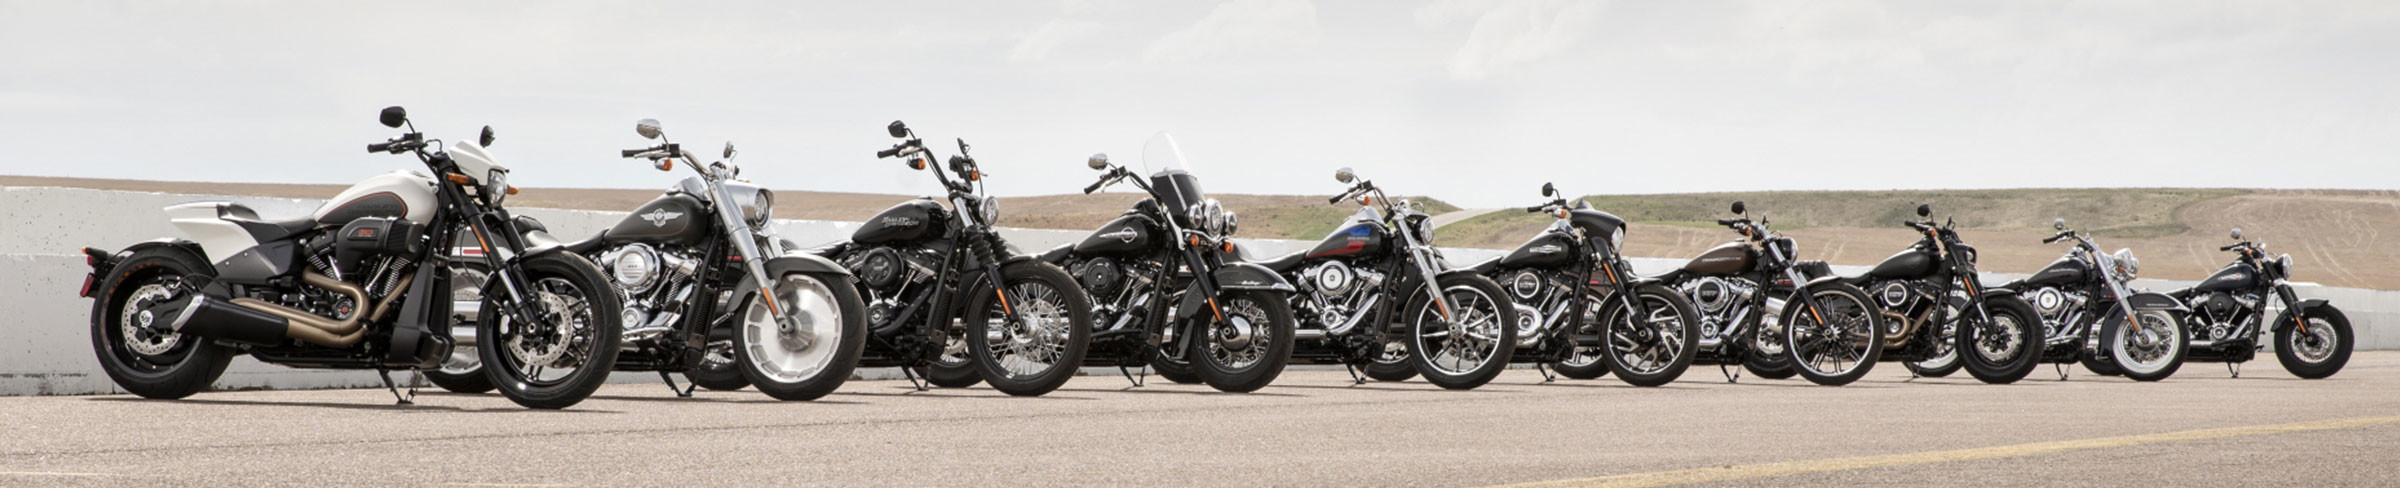 BRANDON HARLEY-DAVIDSON® NEW INVENTORY | NEW 2020 MODELS